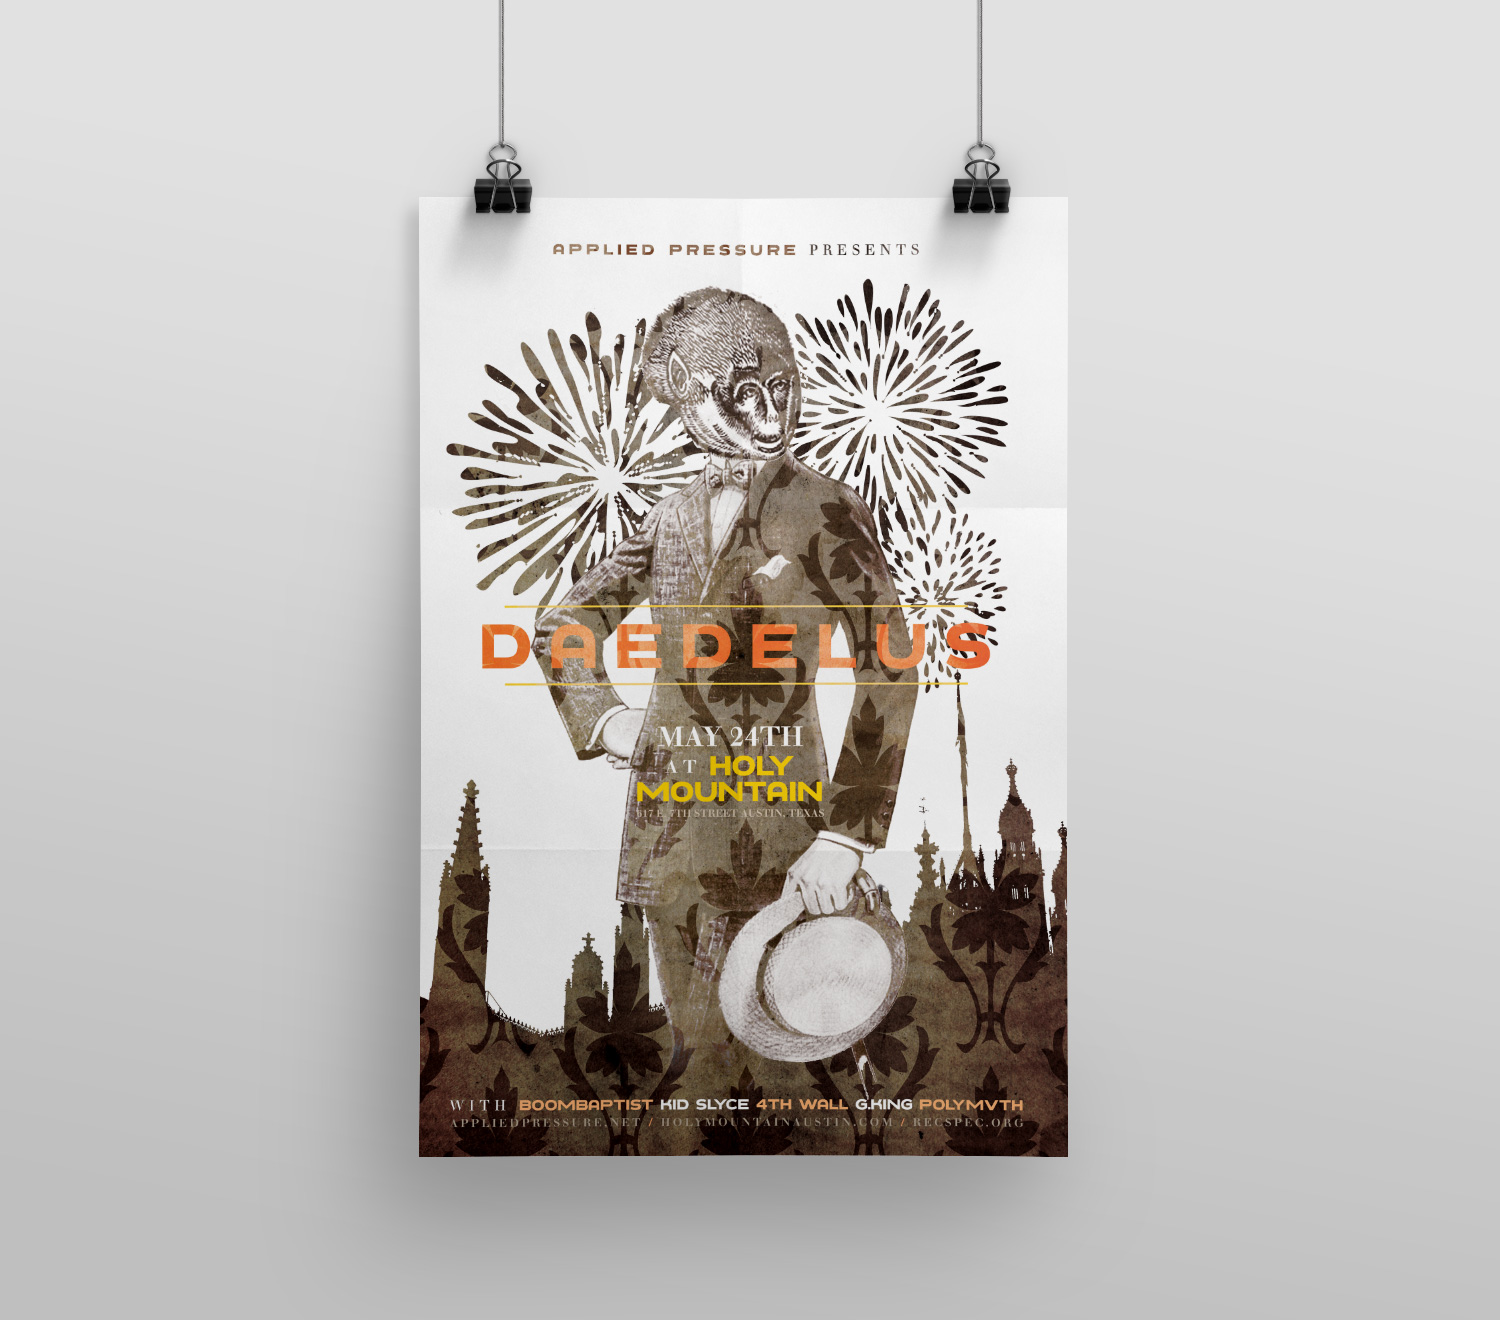 posters11